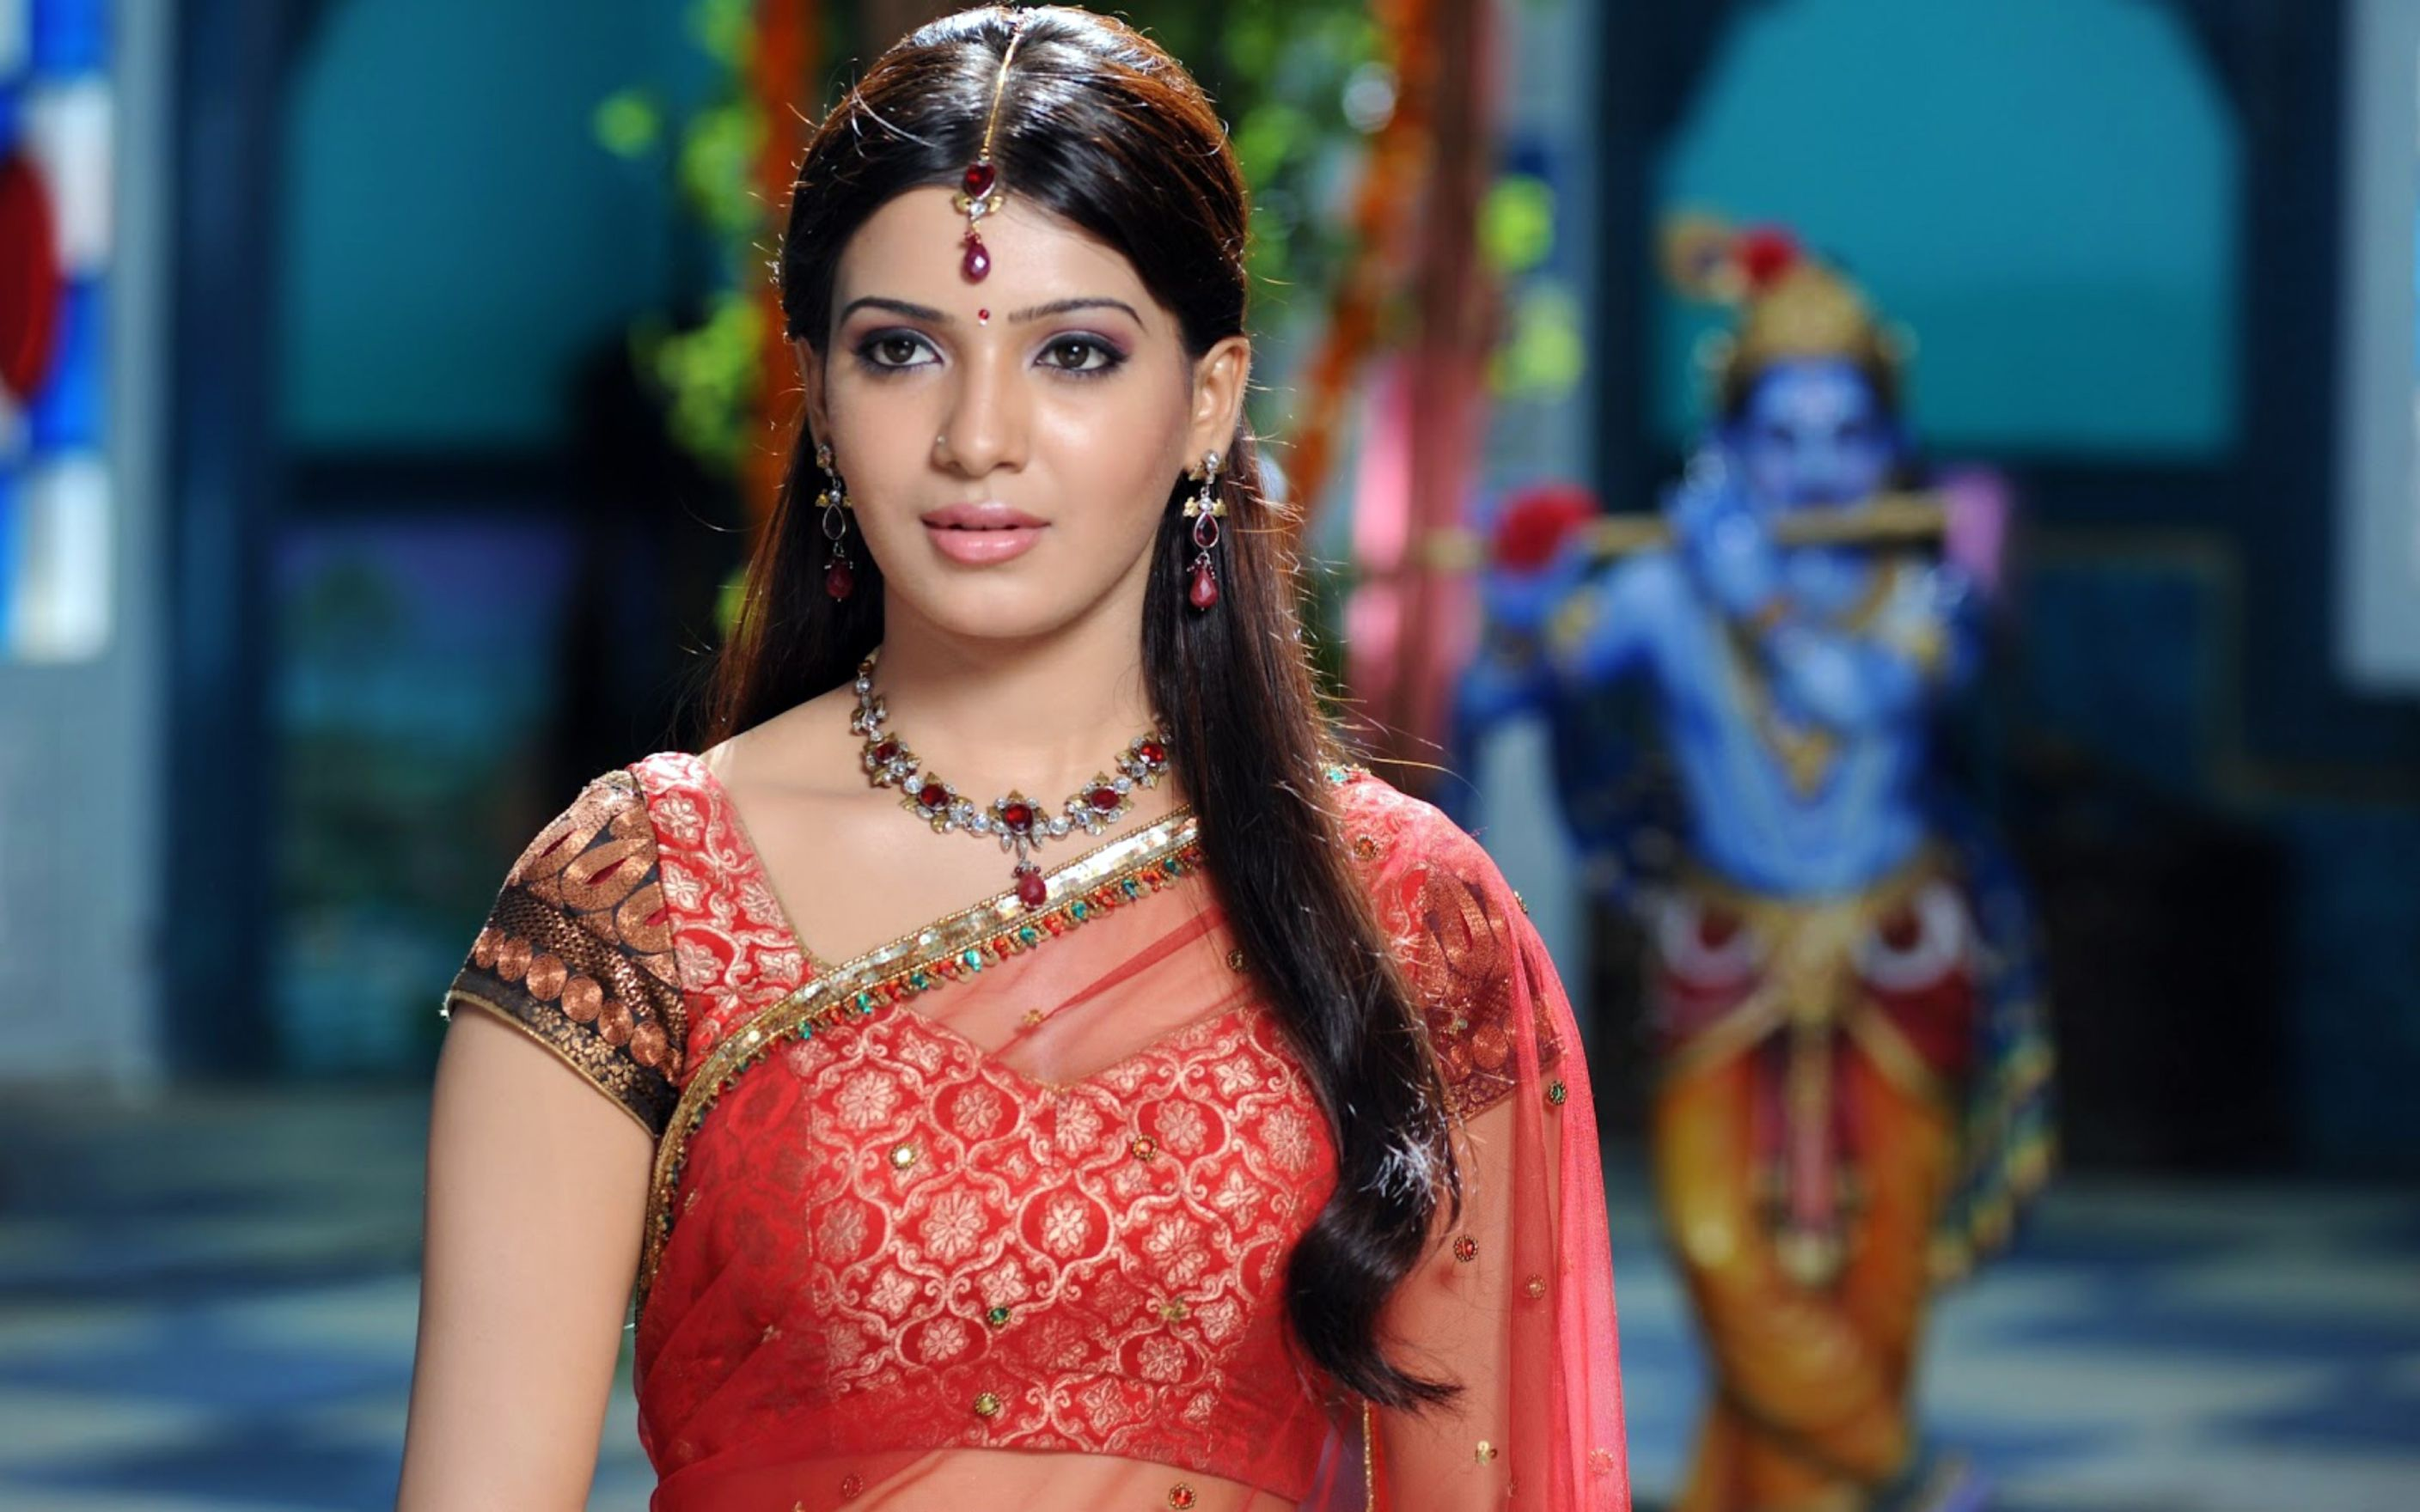 samantha ruth wallpaper: desktop hd wallpaper - download free image